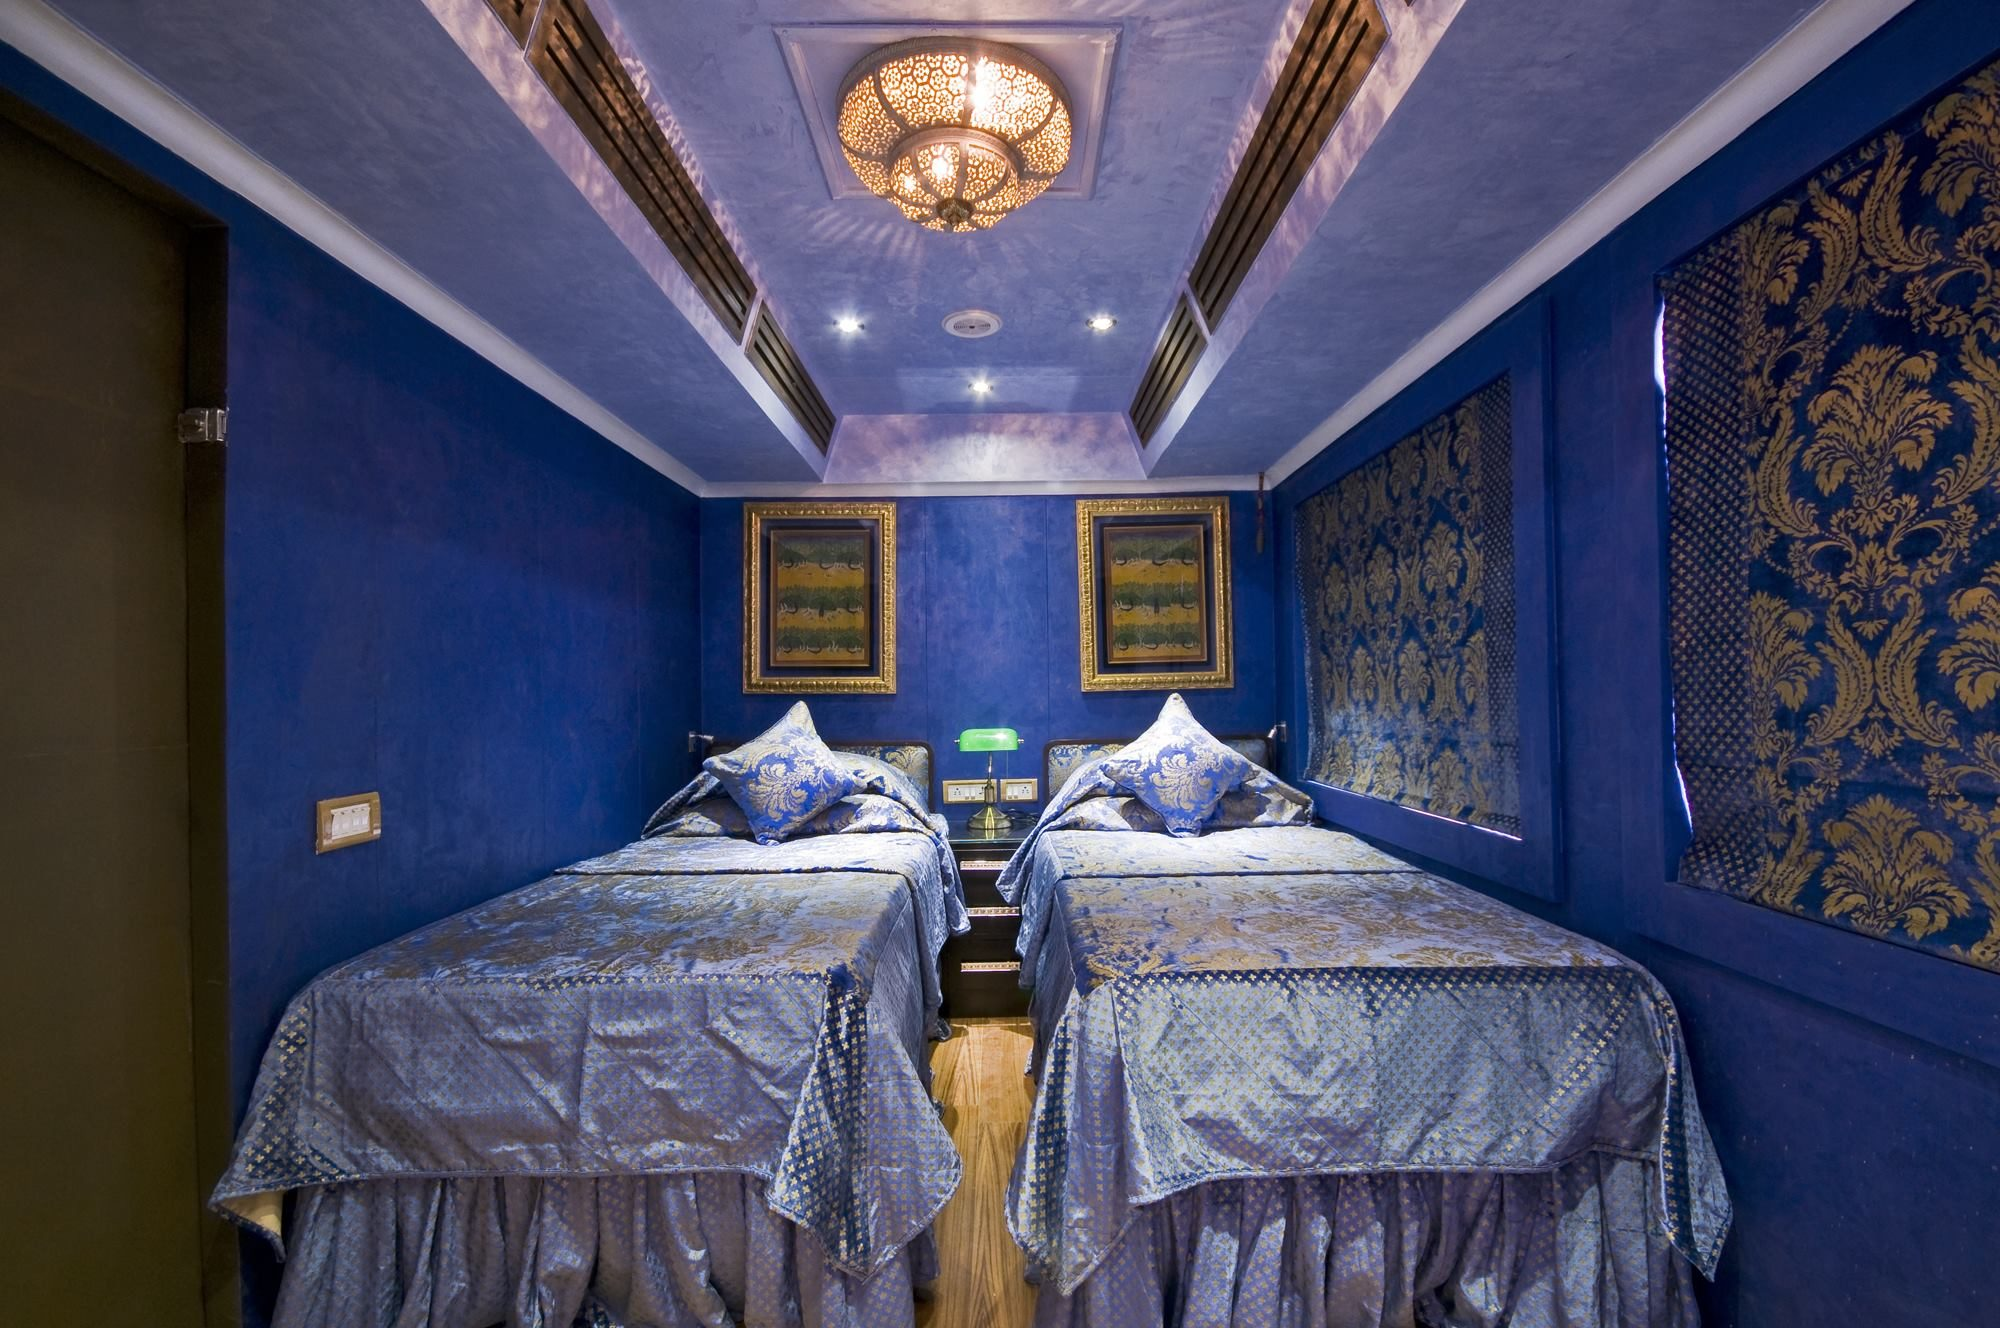 7. Le Royal Rajasthan on Wheels